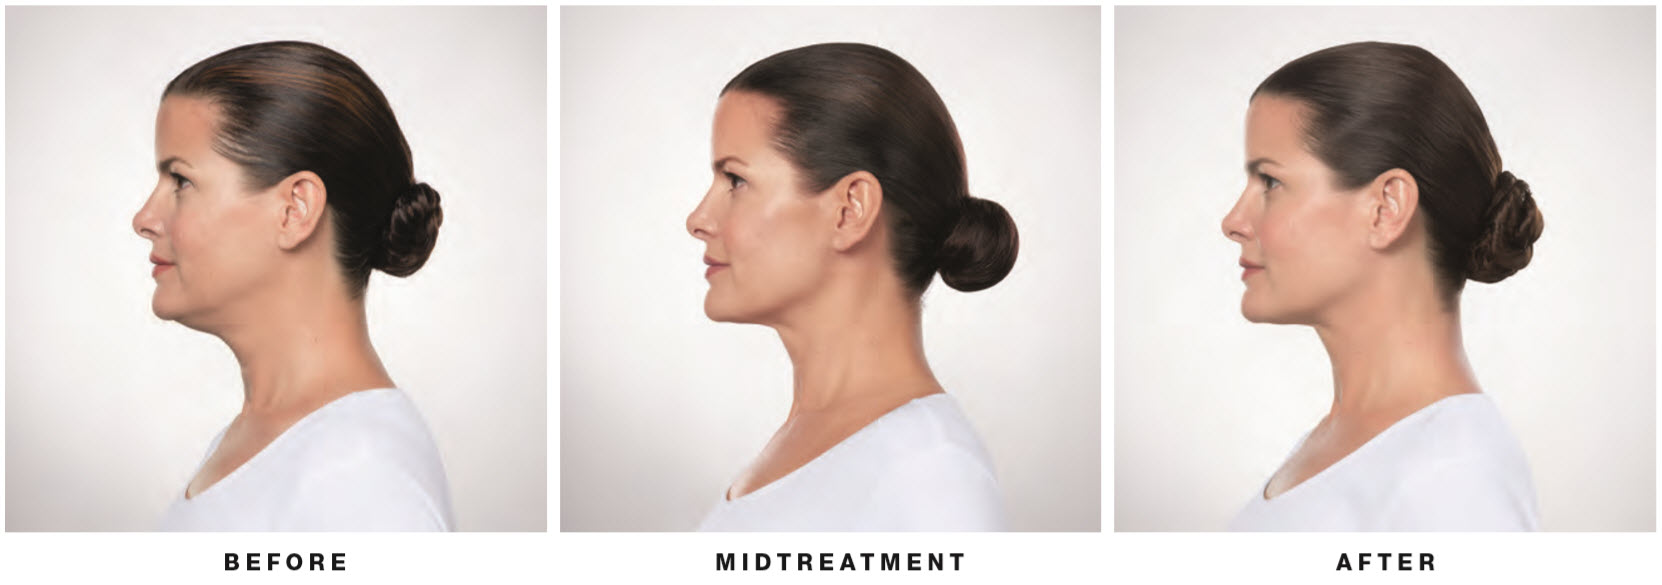 kybella-female-side-view-lake-norman-aesthetics-concierge-med-spa-laser-center-mooresville-nc-28117